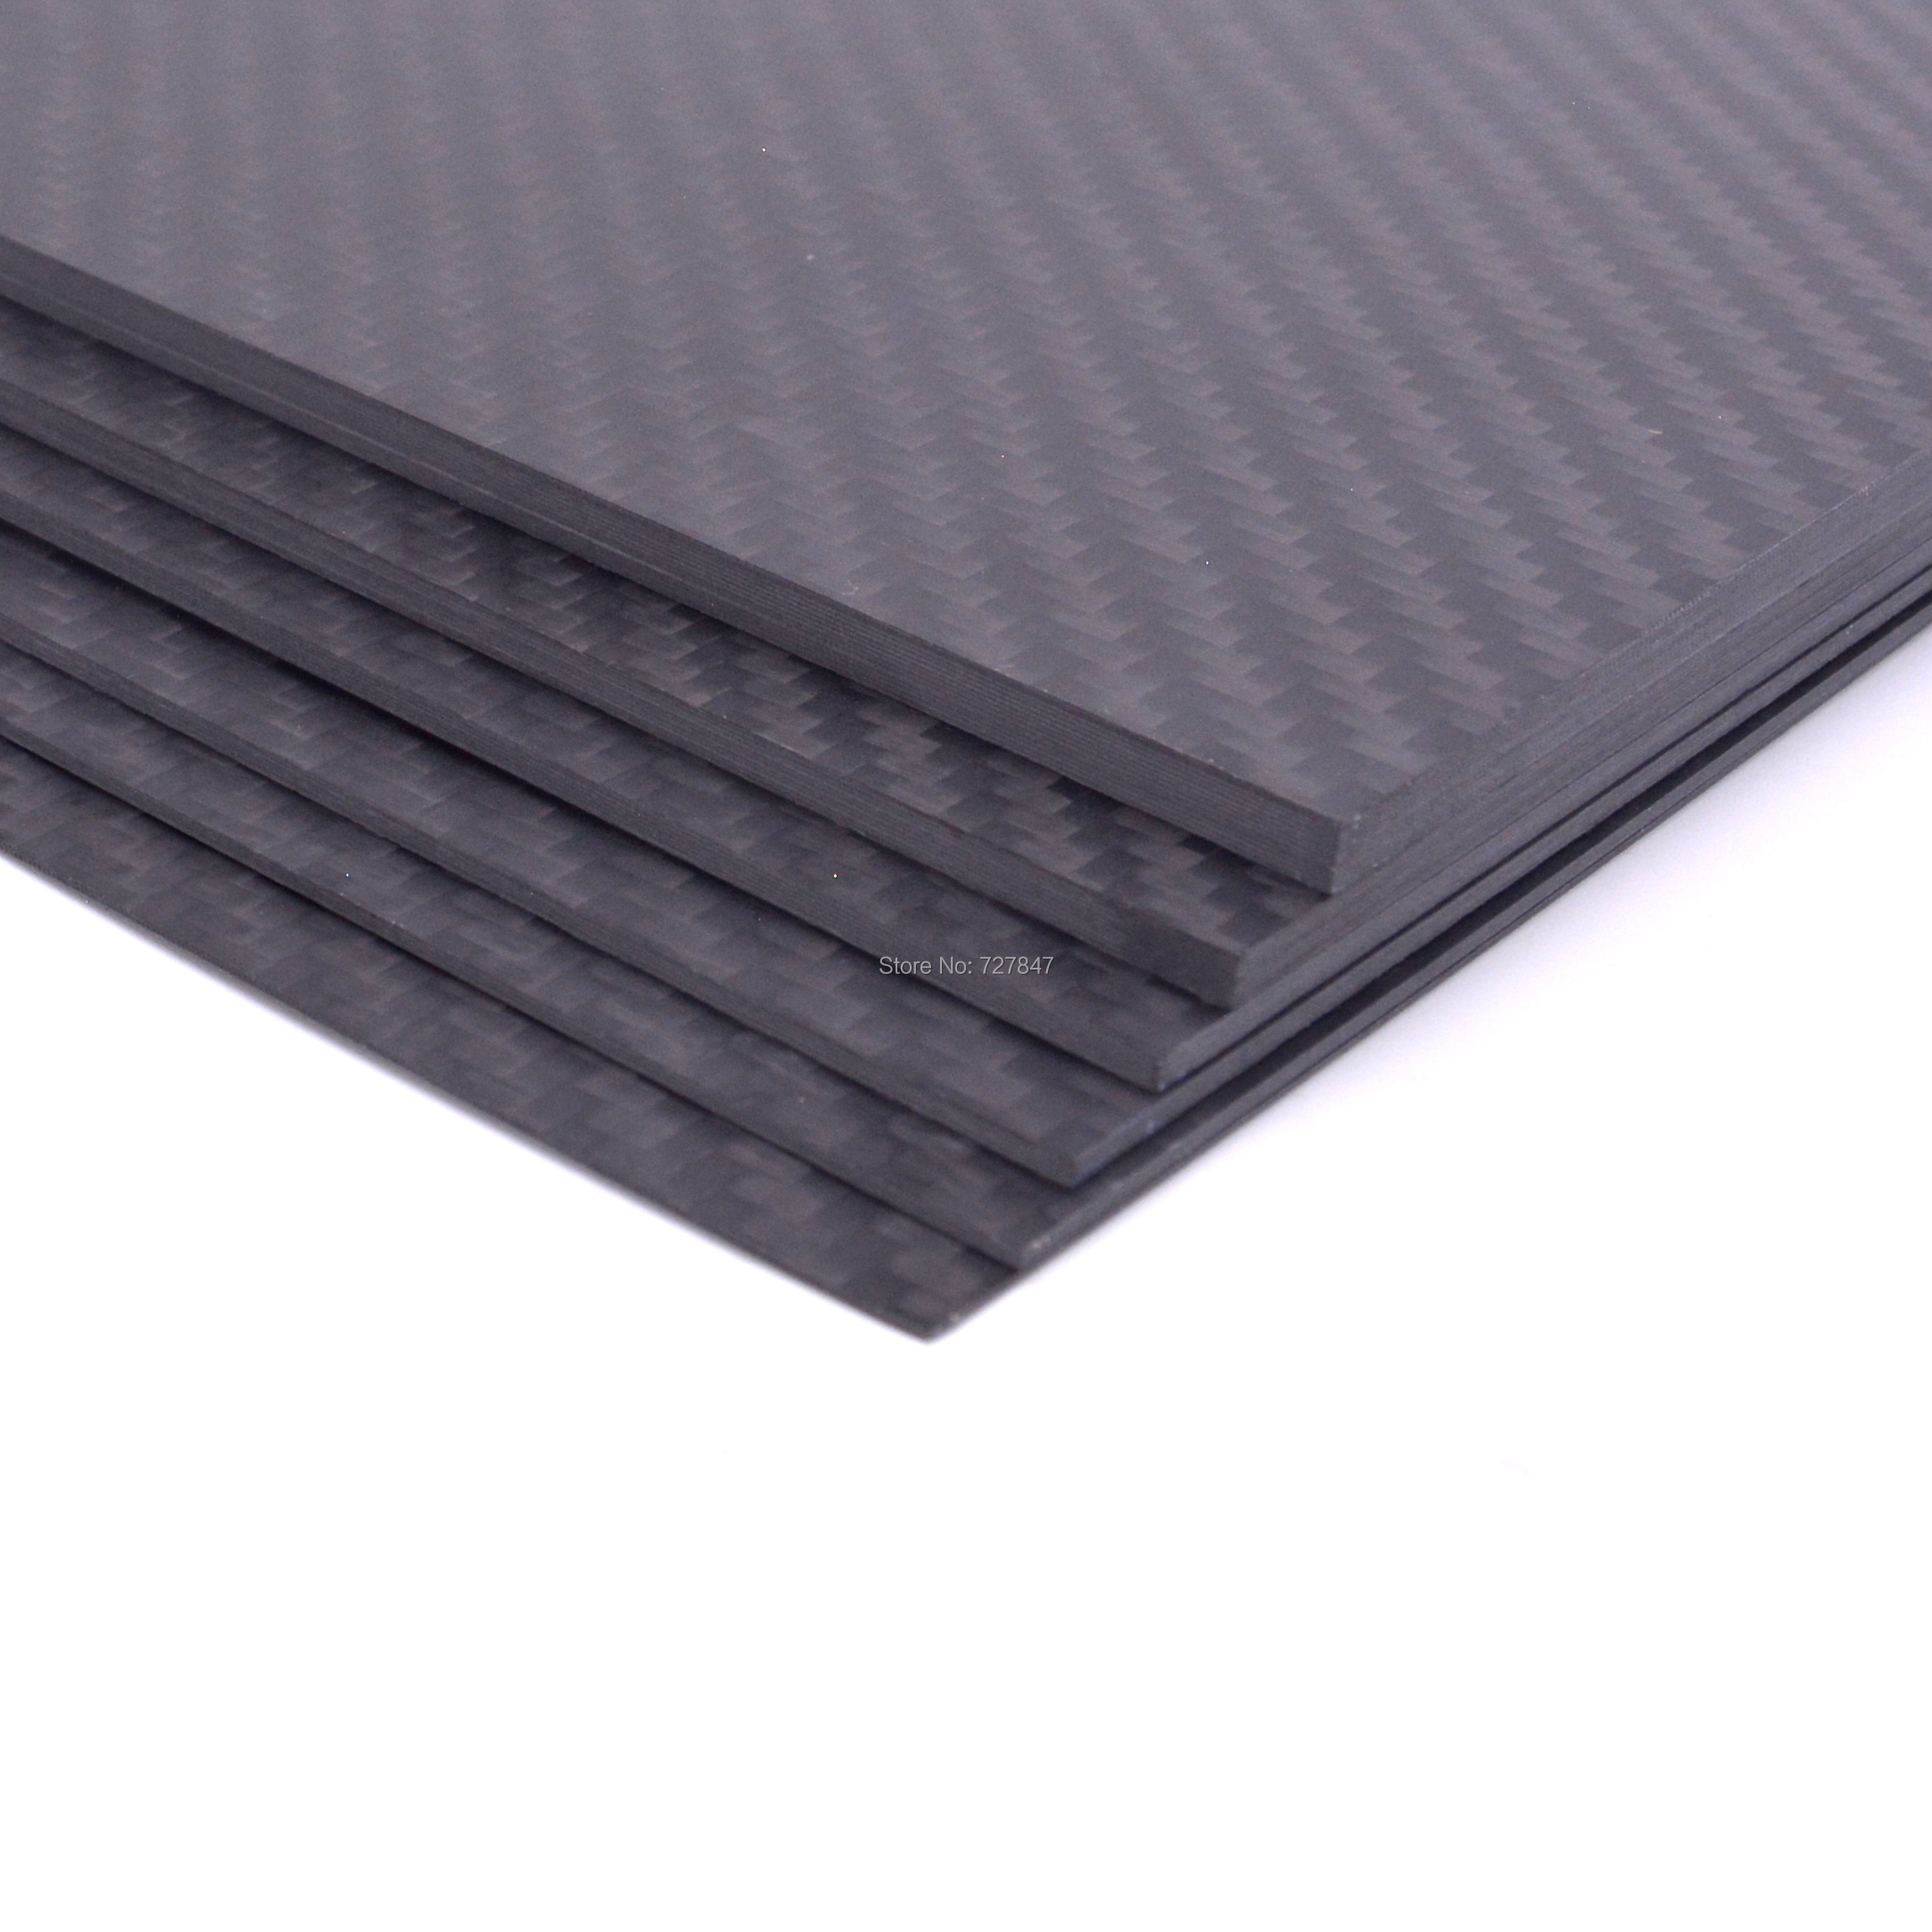 Image 2 - 400mm X 200mm Real Carbon Fiber Plate Panel Sheets 0.5mm 1mm 1.5mm 2mm 3mm 4mm 5mm thickness Composite Hardness Material-in Parts & Accessories from Toys & Hobbies